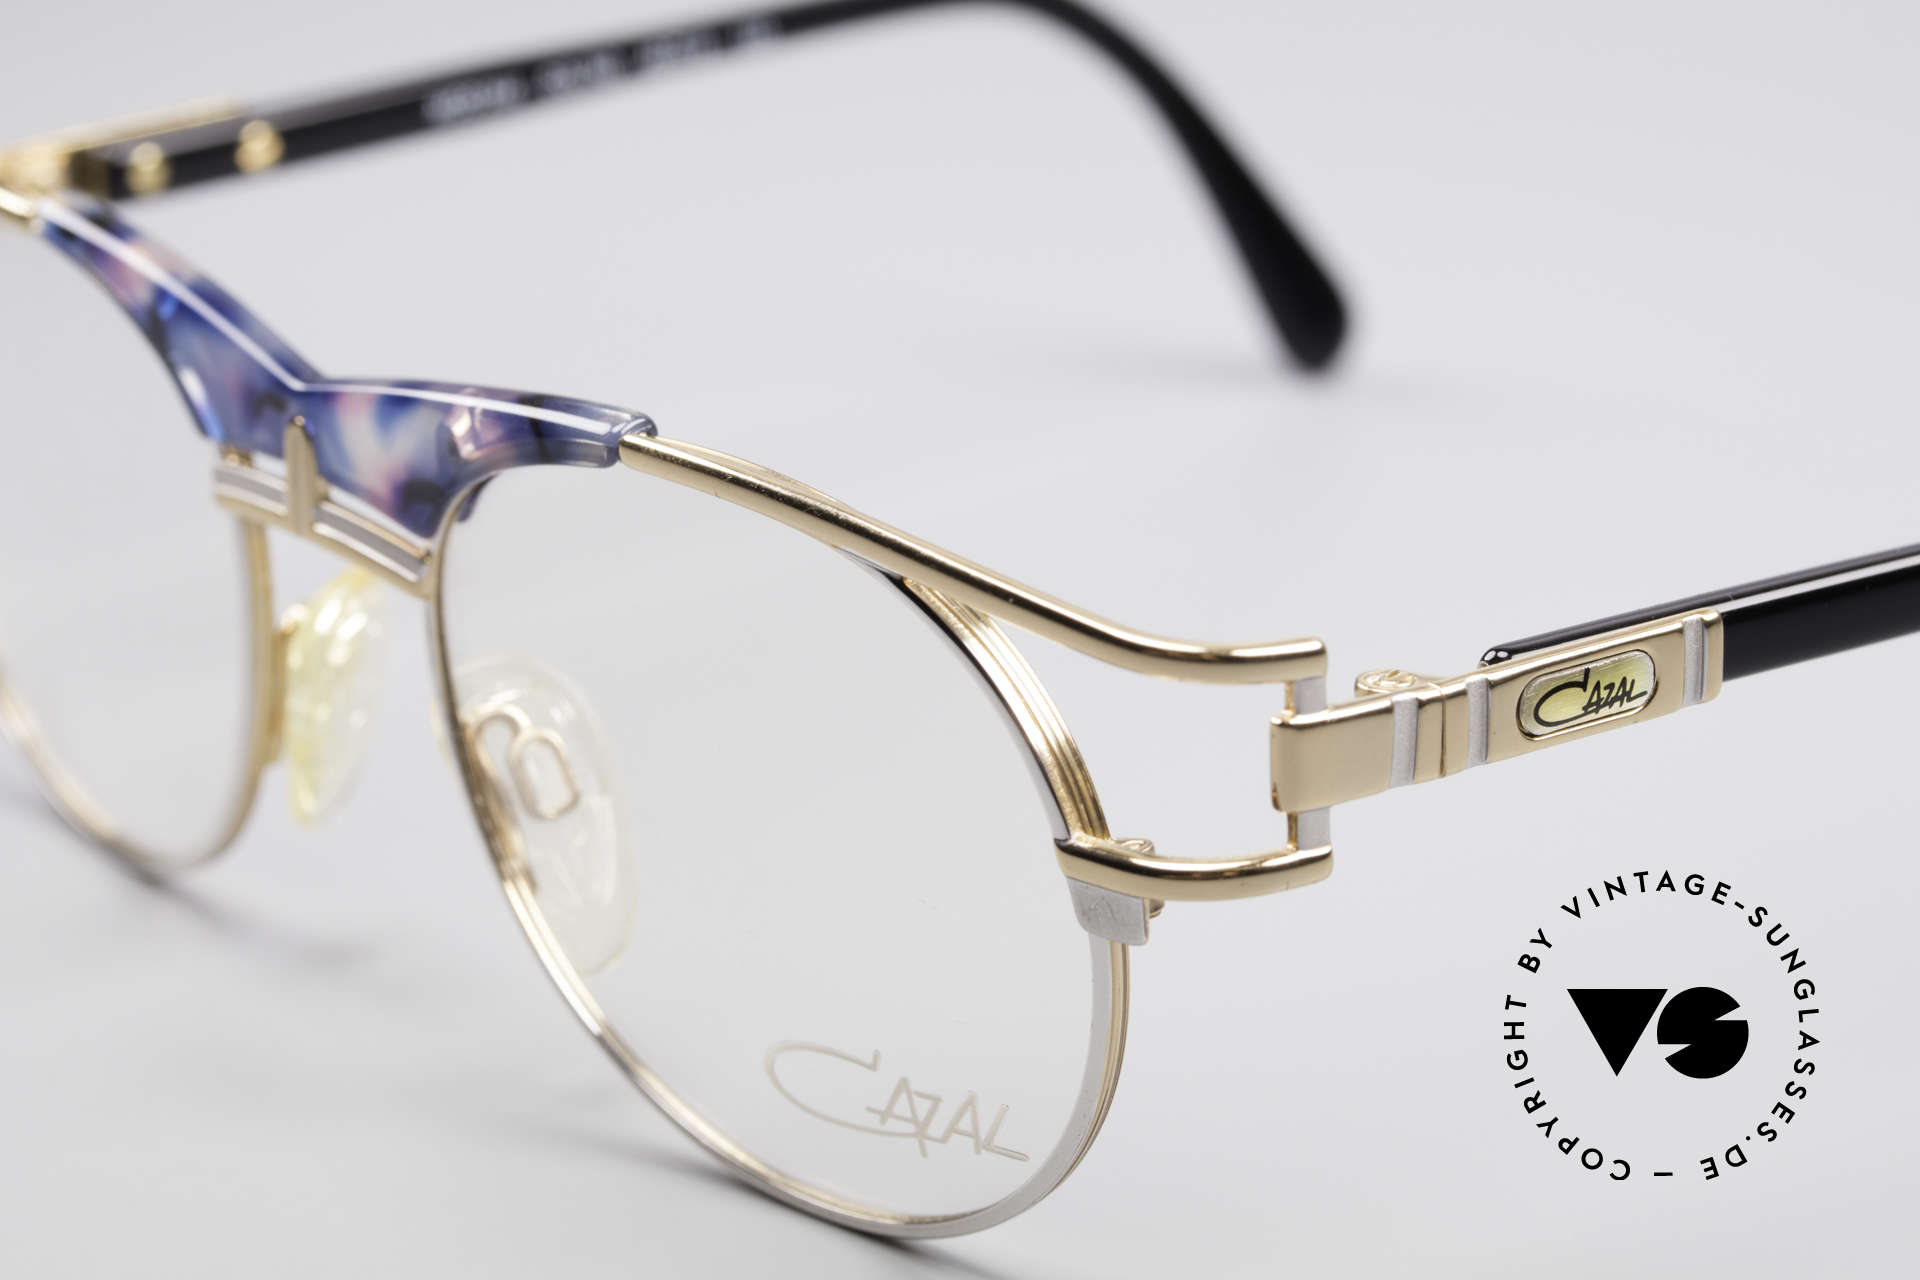 Cazal 244 Iconic Vintage Eyeglasses, never worn (like all our vintage CAZAL rarities), Made for Men and Women